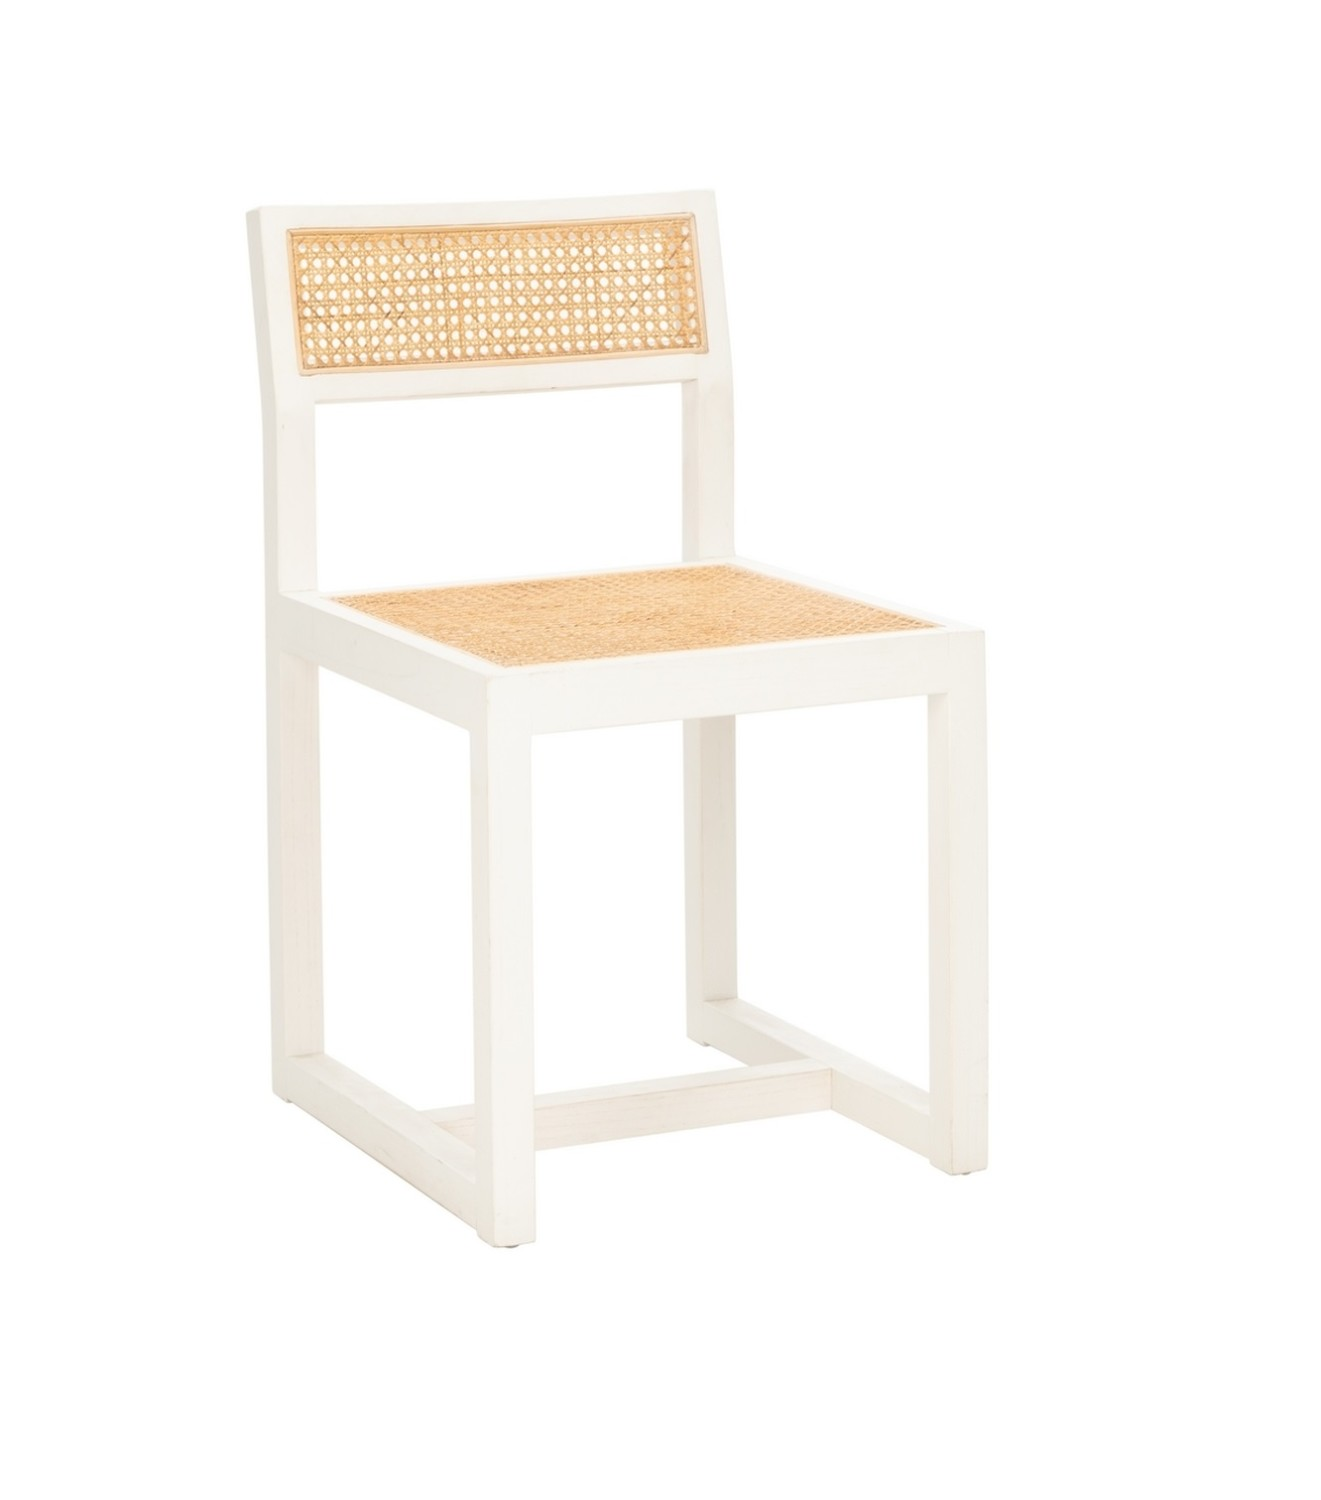 Superb White Cane Dining Chair Caraccident5 Cool Chair Designs And Ideas Caraccident5Info